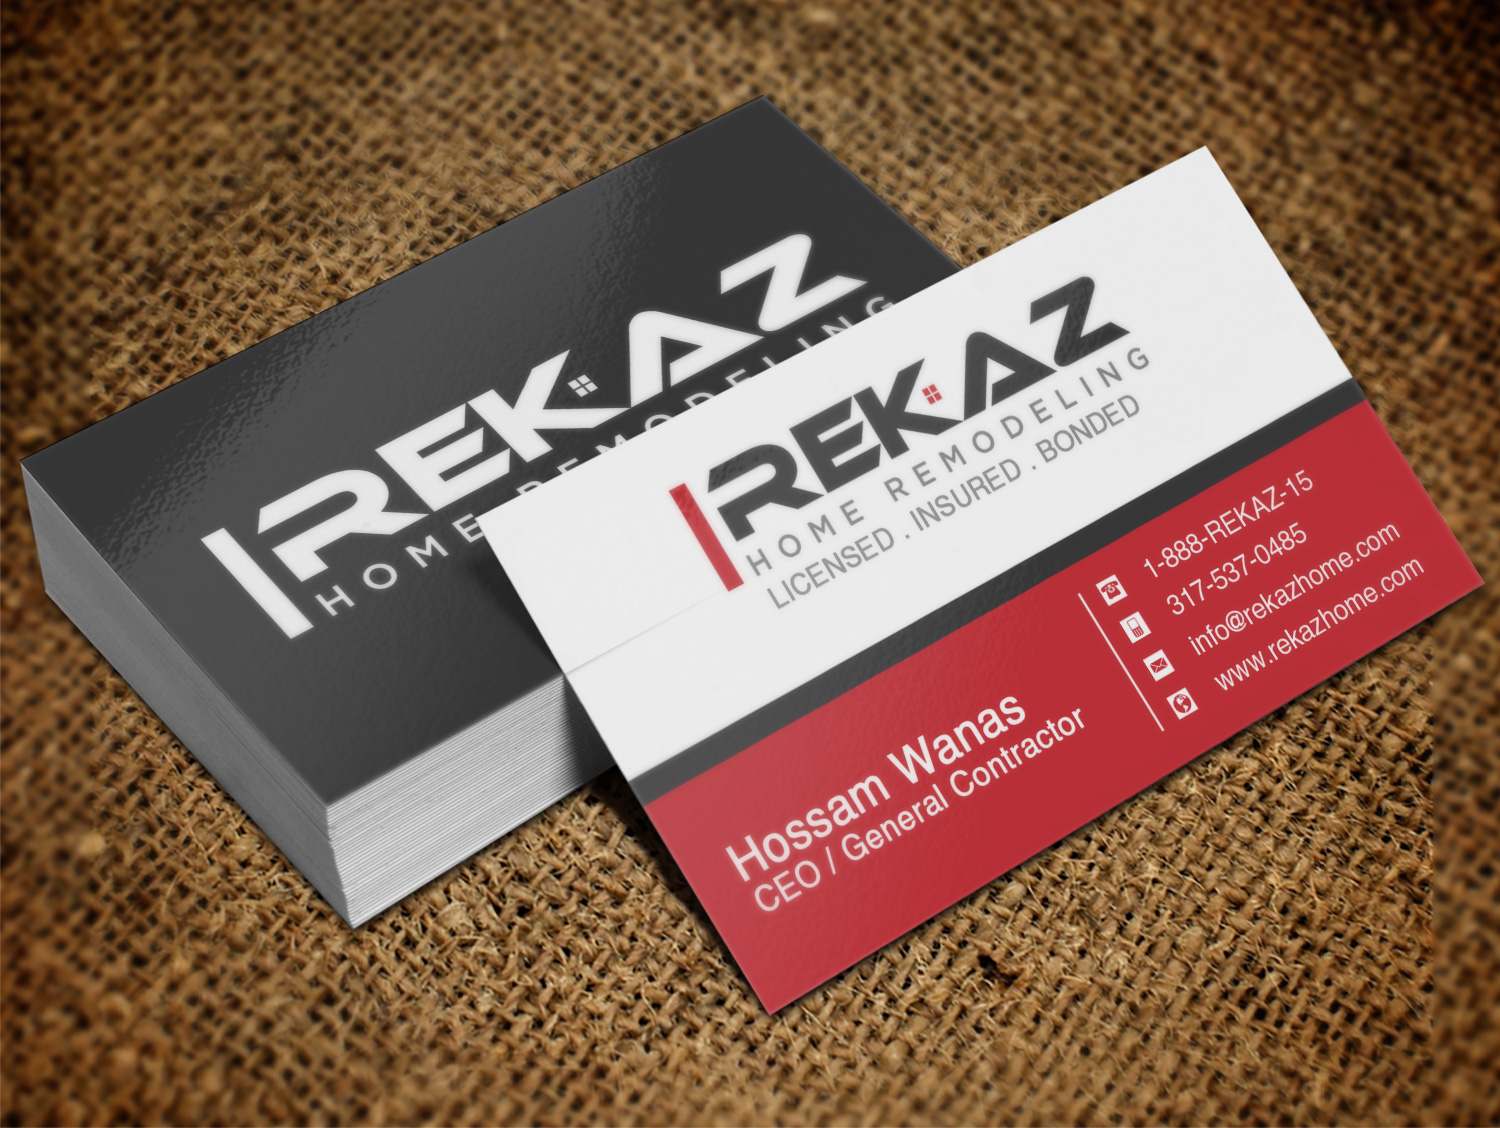 Home remodeling business cards choice image free business cards home remodeling business cards images free business cards business card design for rekaz llc by lanka magicingreecefo Image collections